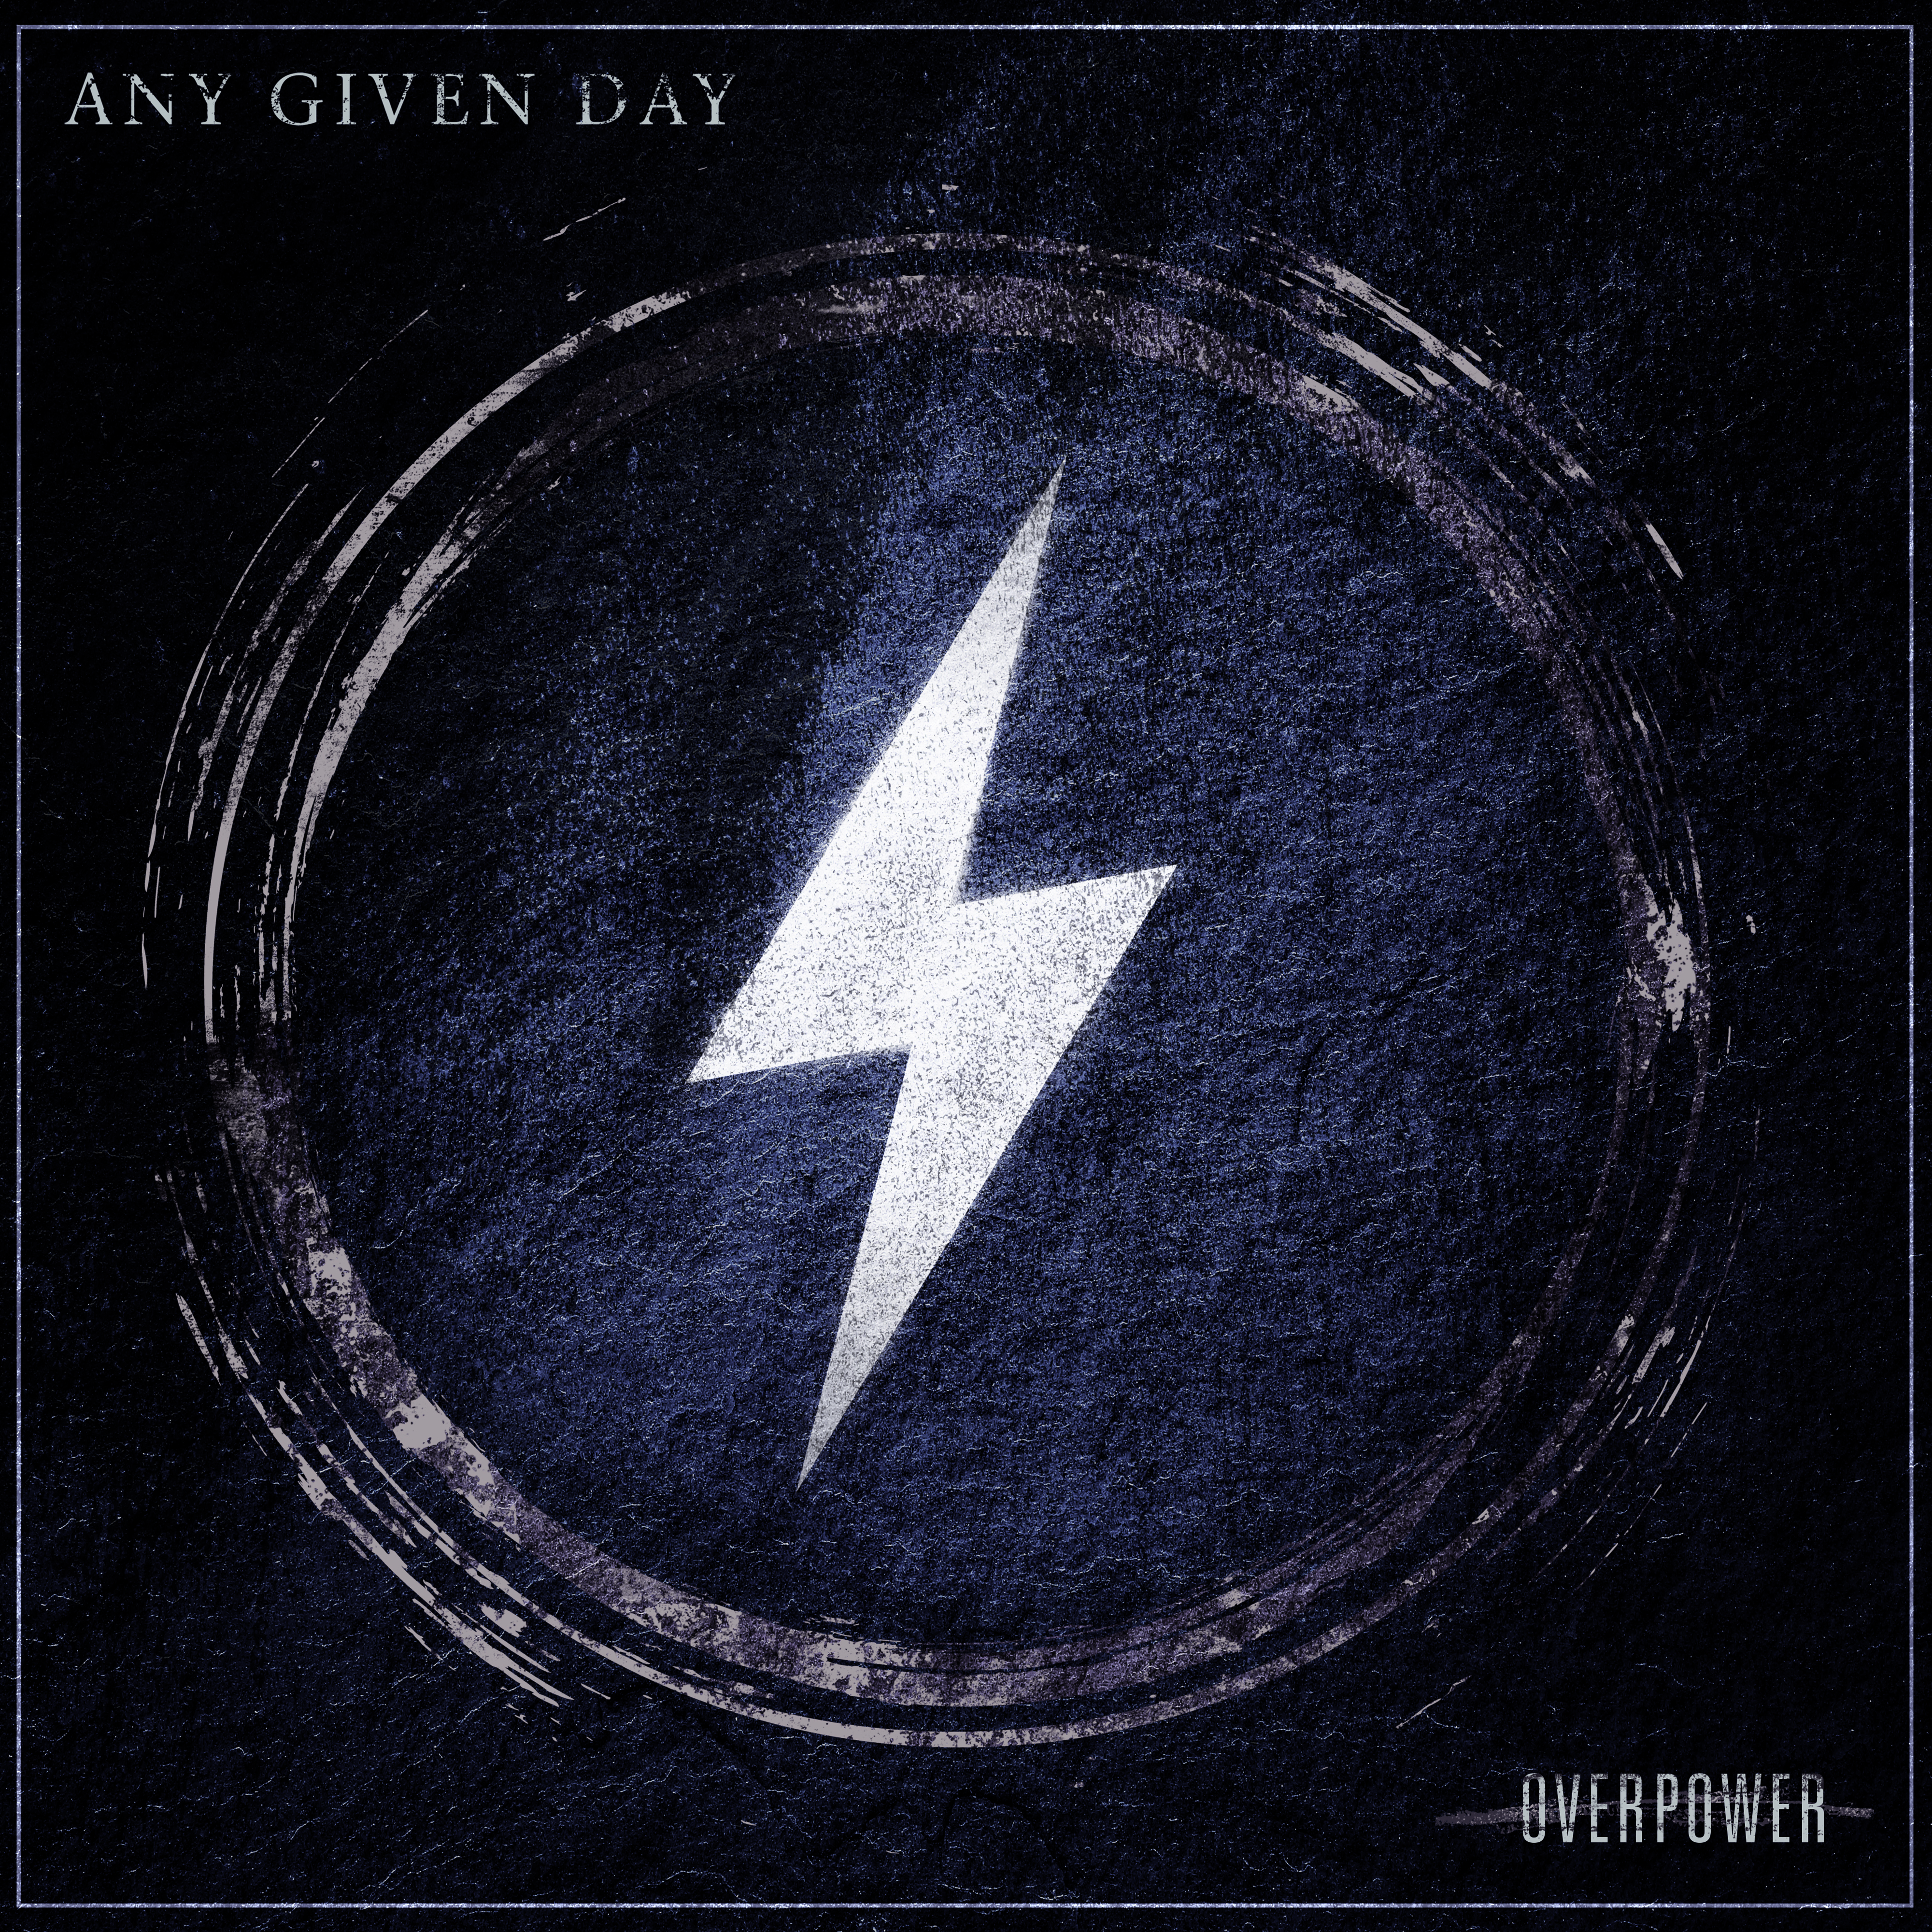 any-given-day-overpower-manege-frei-fuer-album-nr-3-album-review